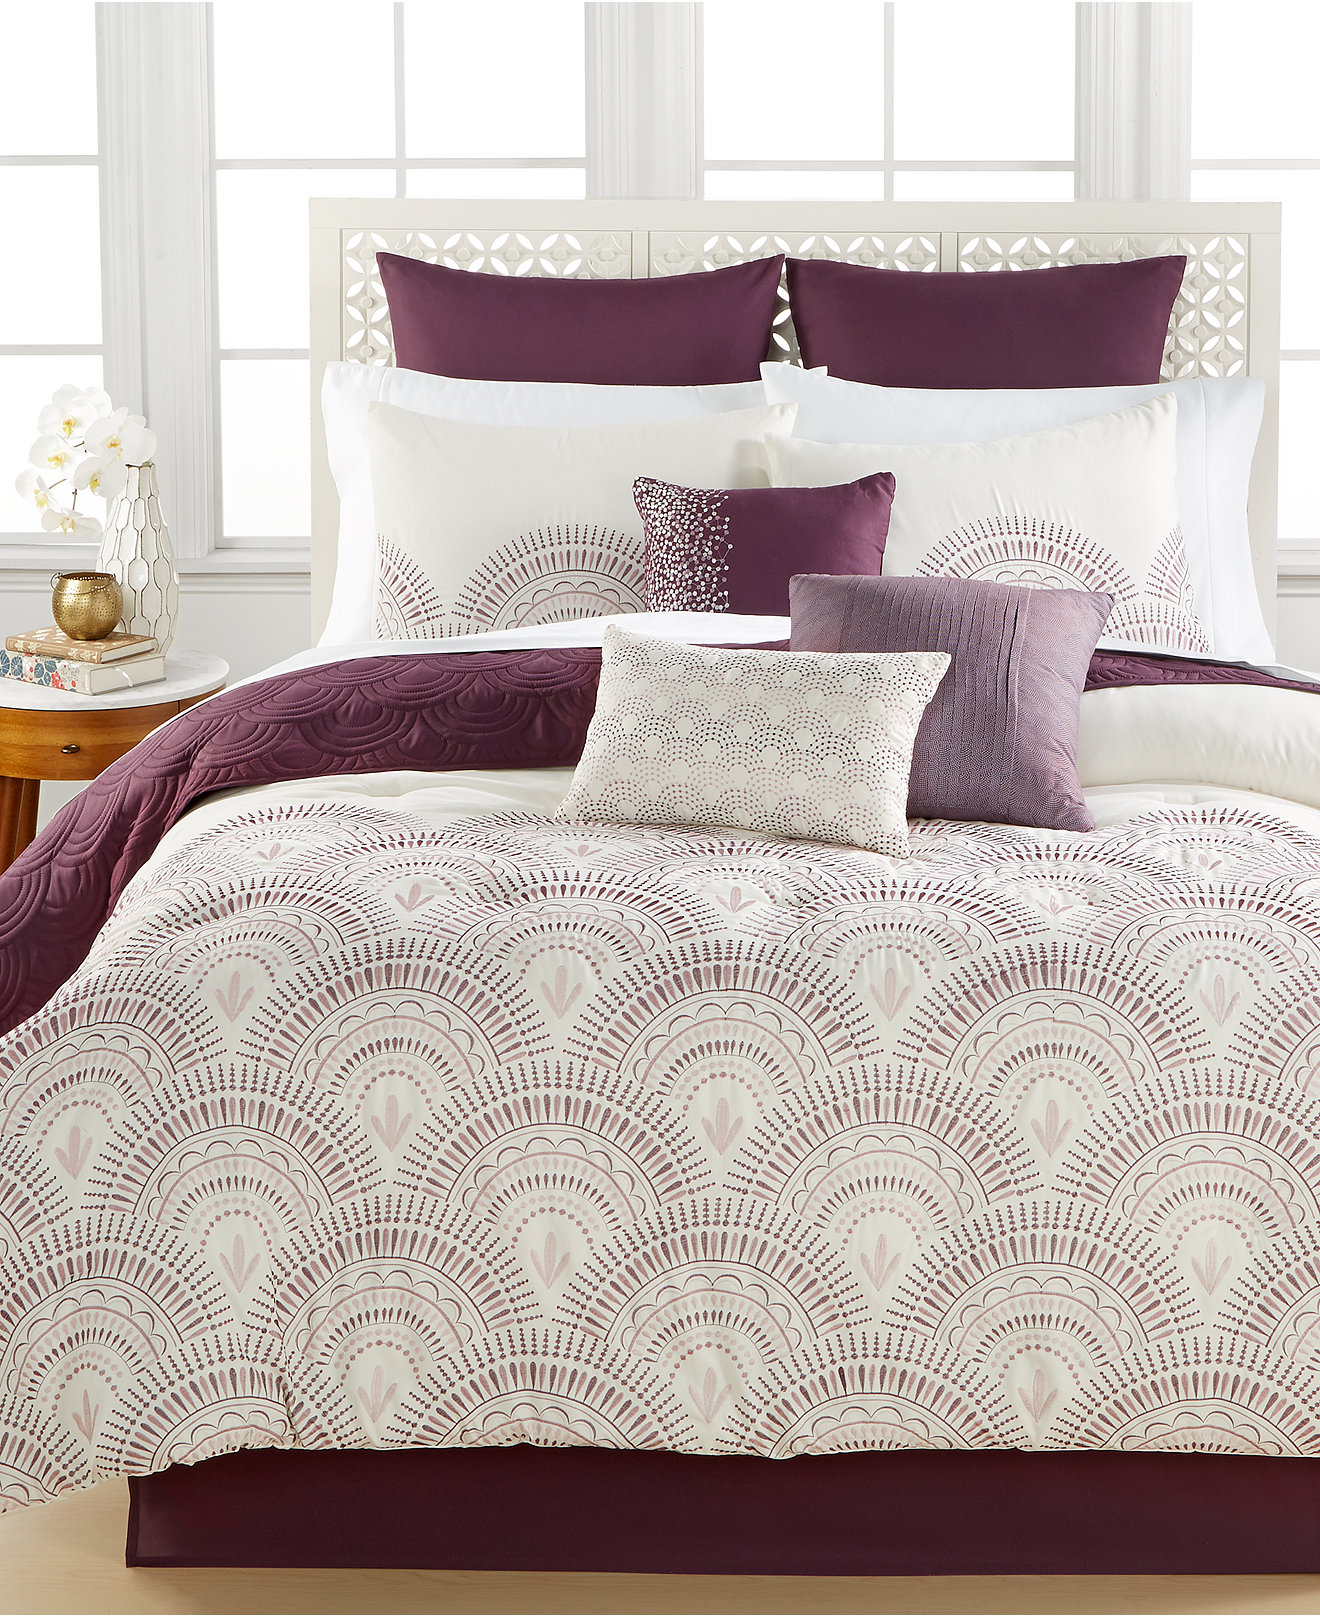 Amusing Full Comforter Sets Bed Queen Size And King Bedsize Also Pillows And Cushion Combined With Headboards And Curtains